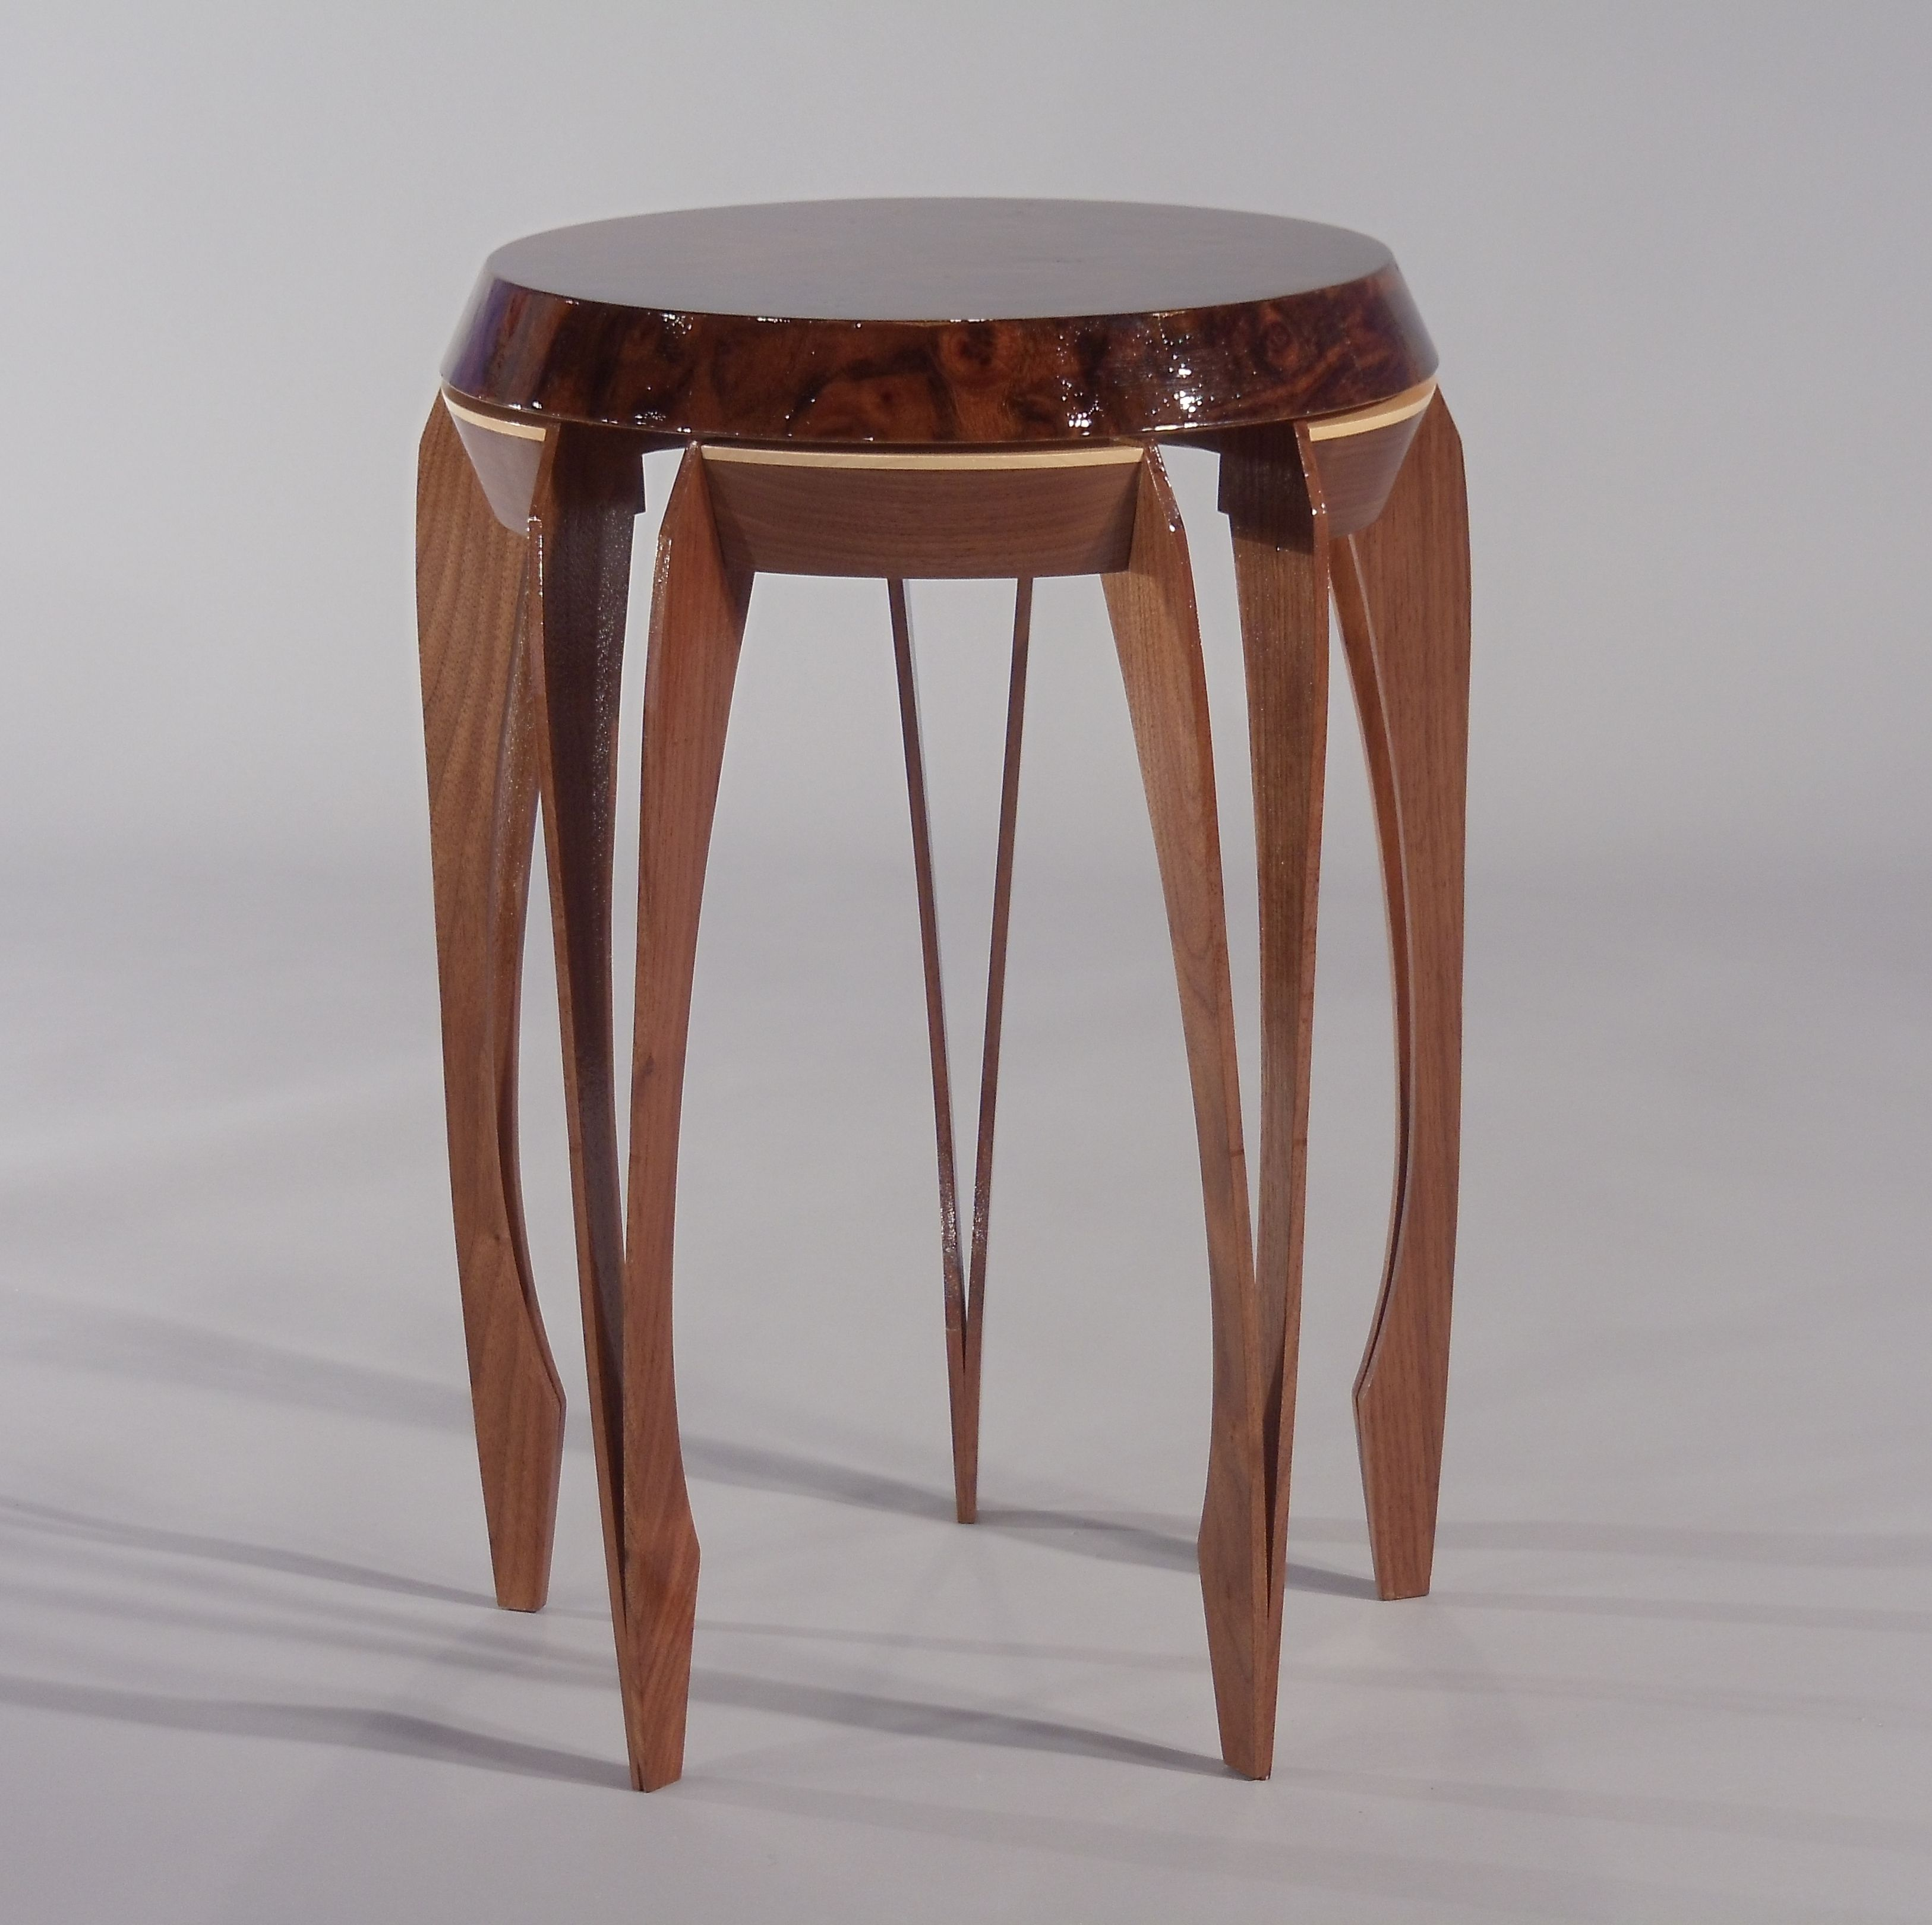 Unique And Custom Tables Designed By Esoteric Furniture. Modern And Unique  Designs Manufactured In Michigan.